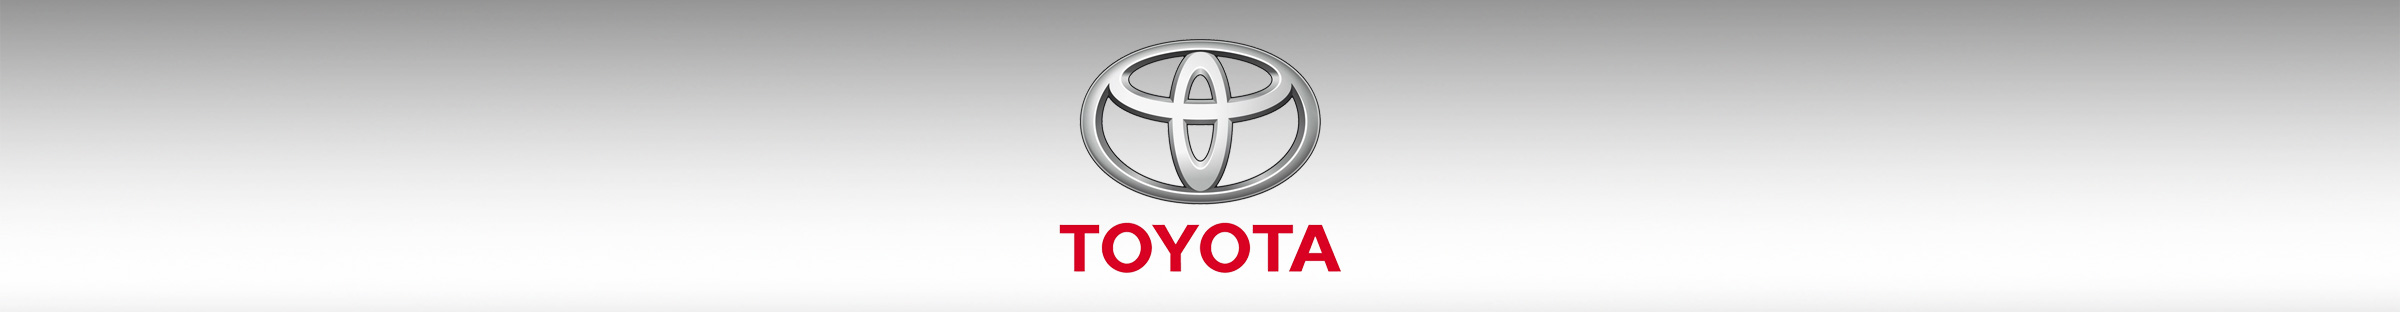 Featured Models from Toyota include the Corolla, Highlander and Mirai now at the 2018 Sacramento International Auto Show.